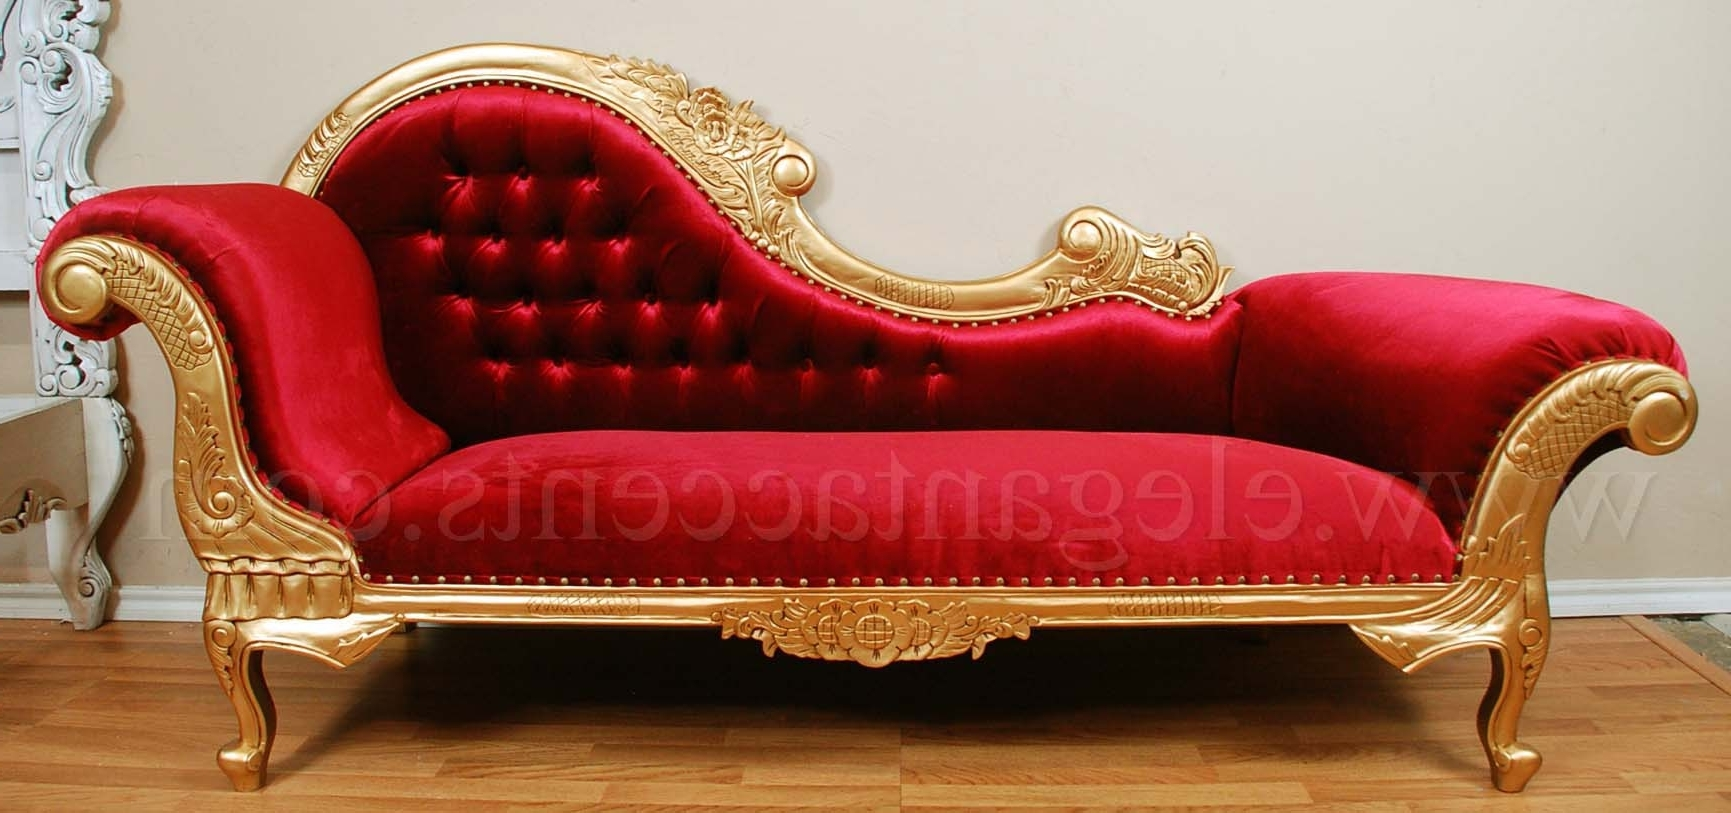 Victorian Chaise Lounge Chairs Pertaining To Popular Inspiring Red Victorian Chaise Lounge Pics Decoration Ideas (View 14 of 15)